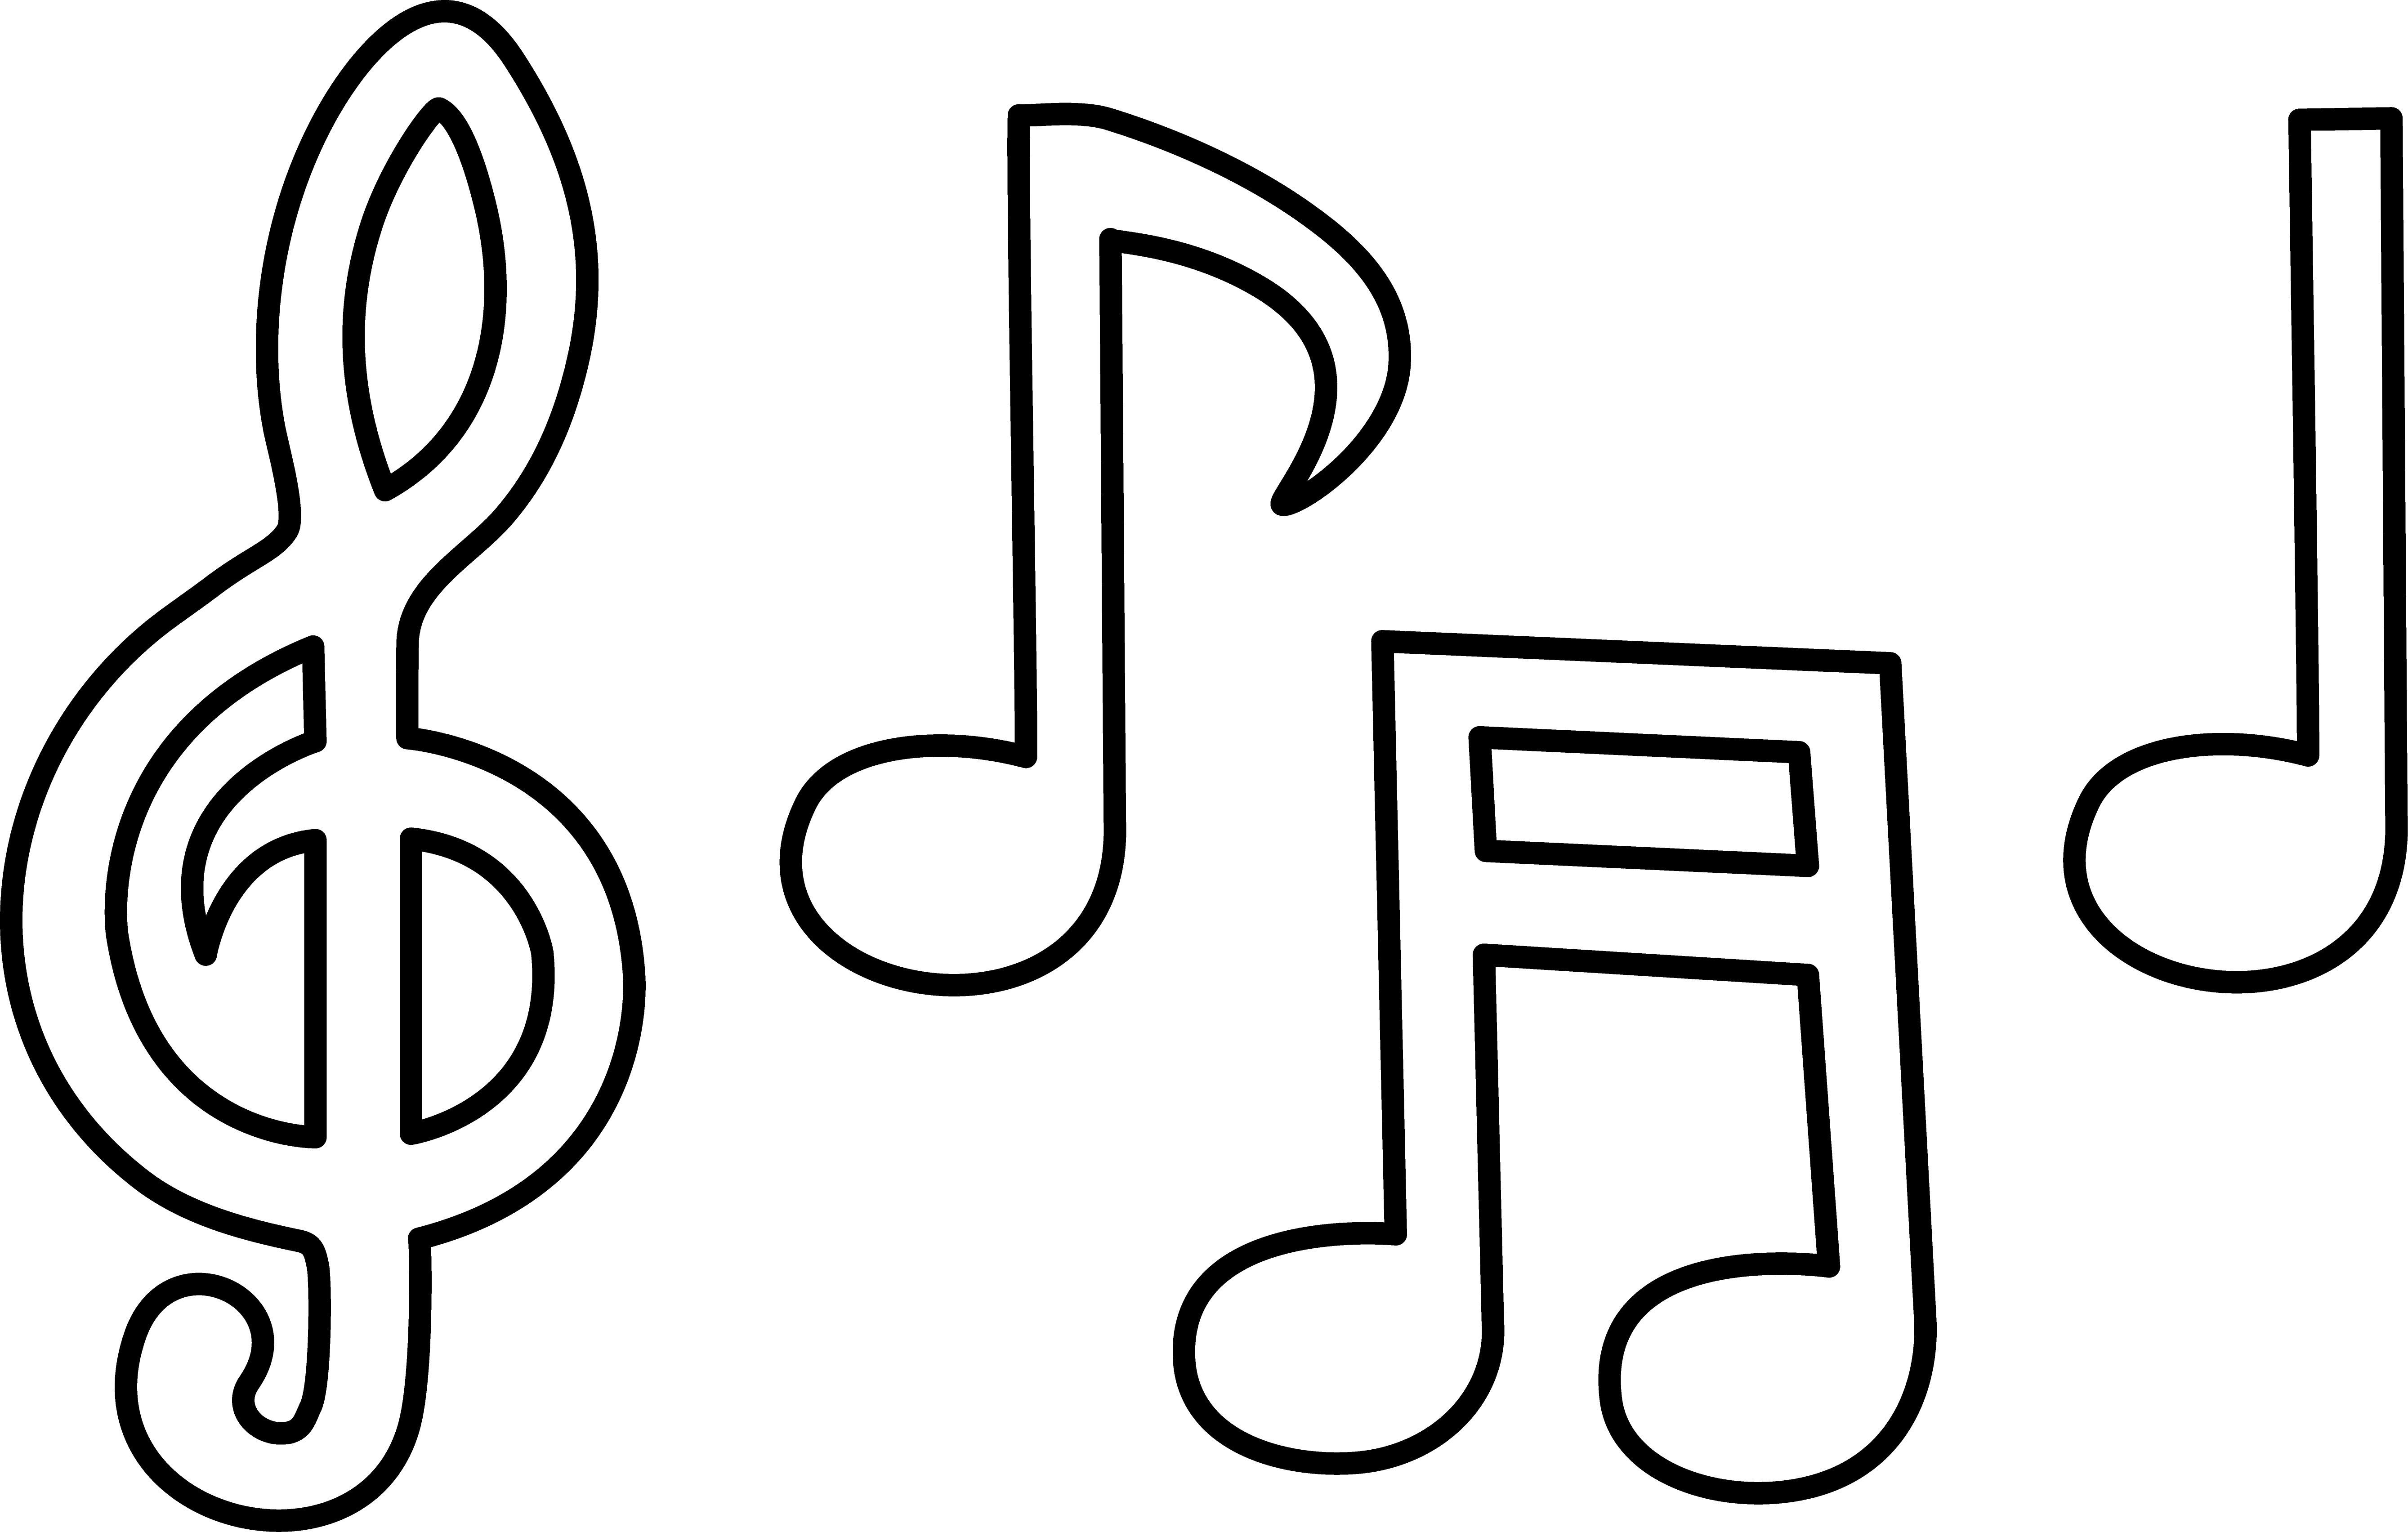 These Are The Best Music Note Coloring Pages Download And Save This Ideas About Best 20 Printable Coloring In 2020 Music Notes Drawing Music Note Symbol Music Clipart